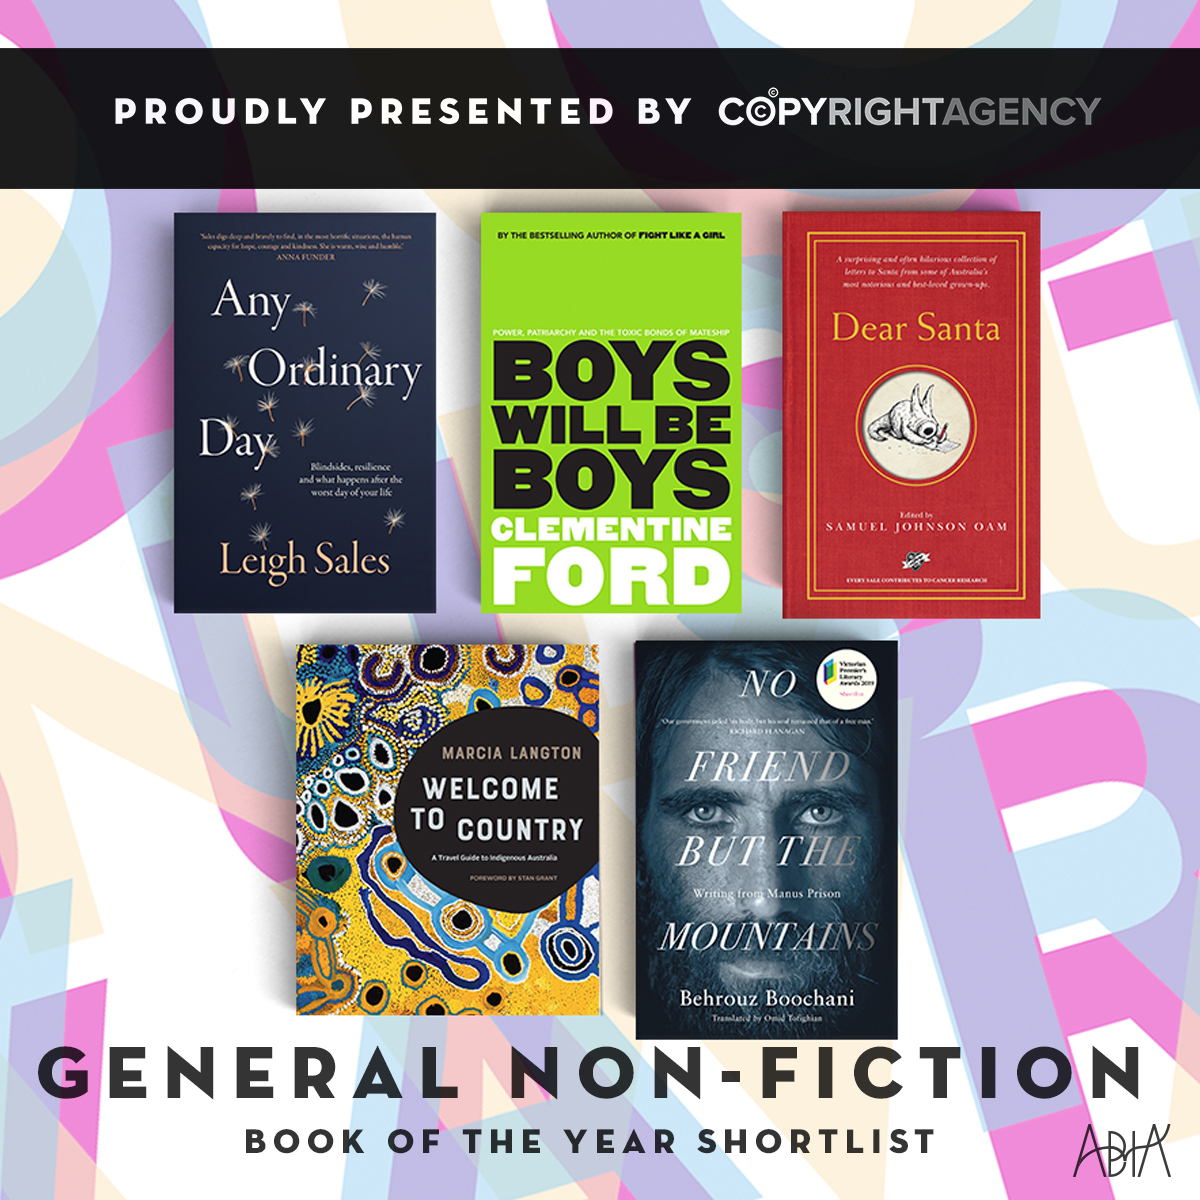 ABIA2019_GenNonFiction_Shortlist-1.jpg